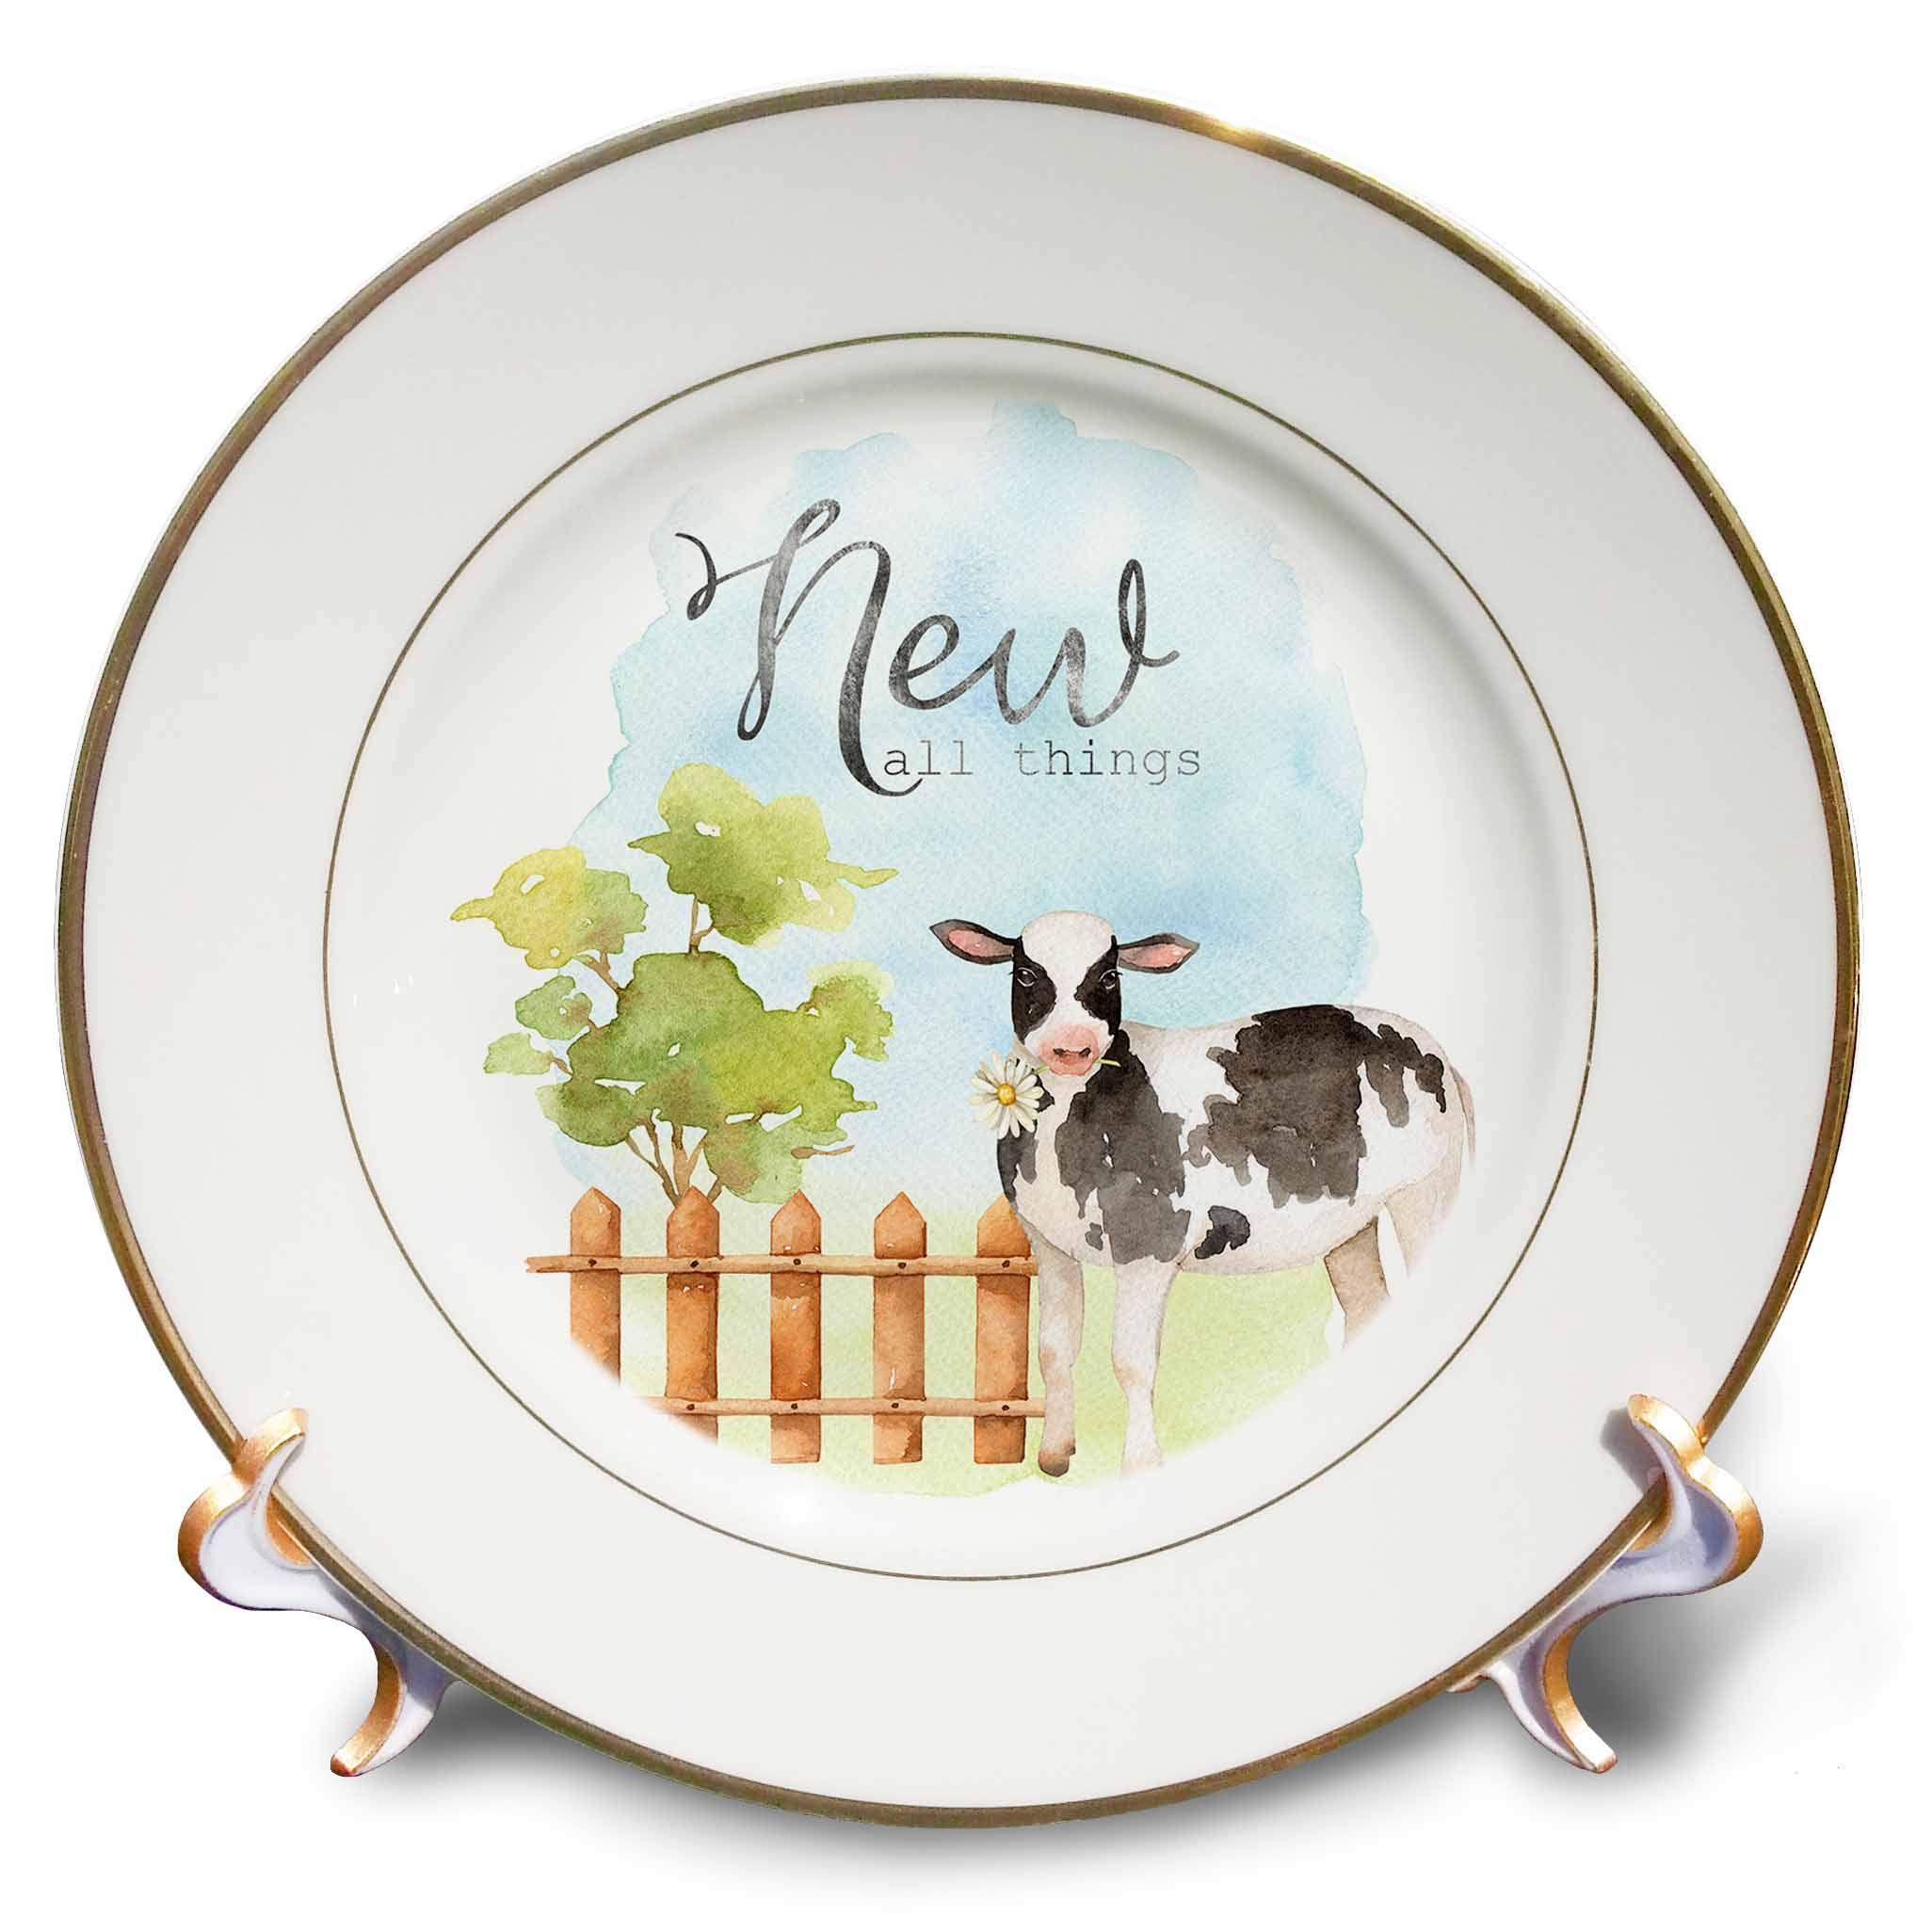 3dRose Uta Naumann Sayings and Typography - New All Things - Animal Cow Garden- Watercolor Illustration Typography - 8 inch Porcelain Plate (cp_292000_1)